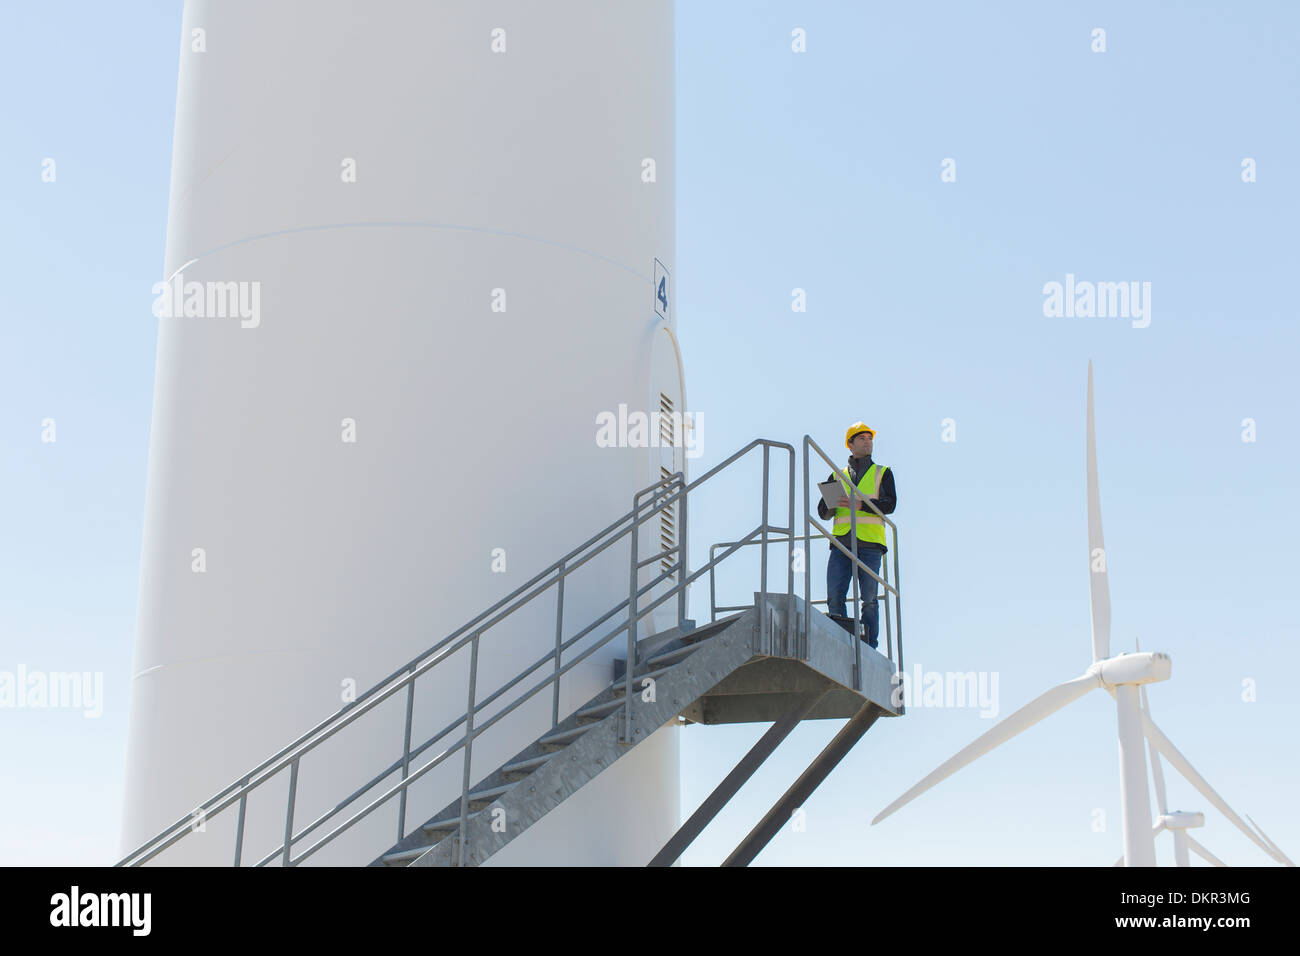 Worker standing on wind turbine - Stock Image